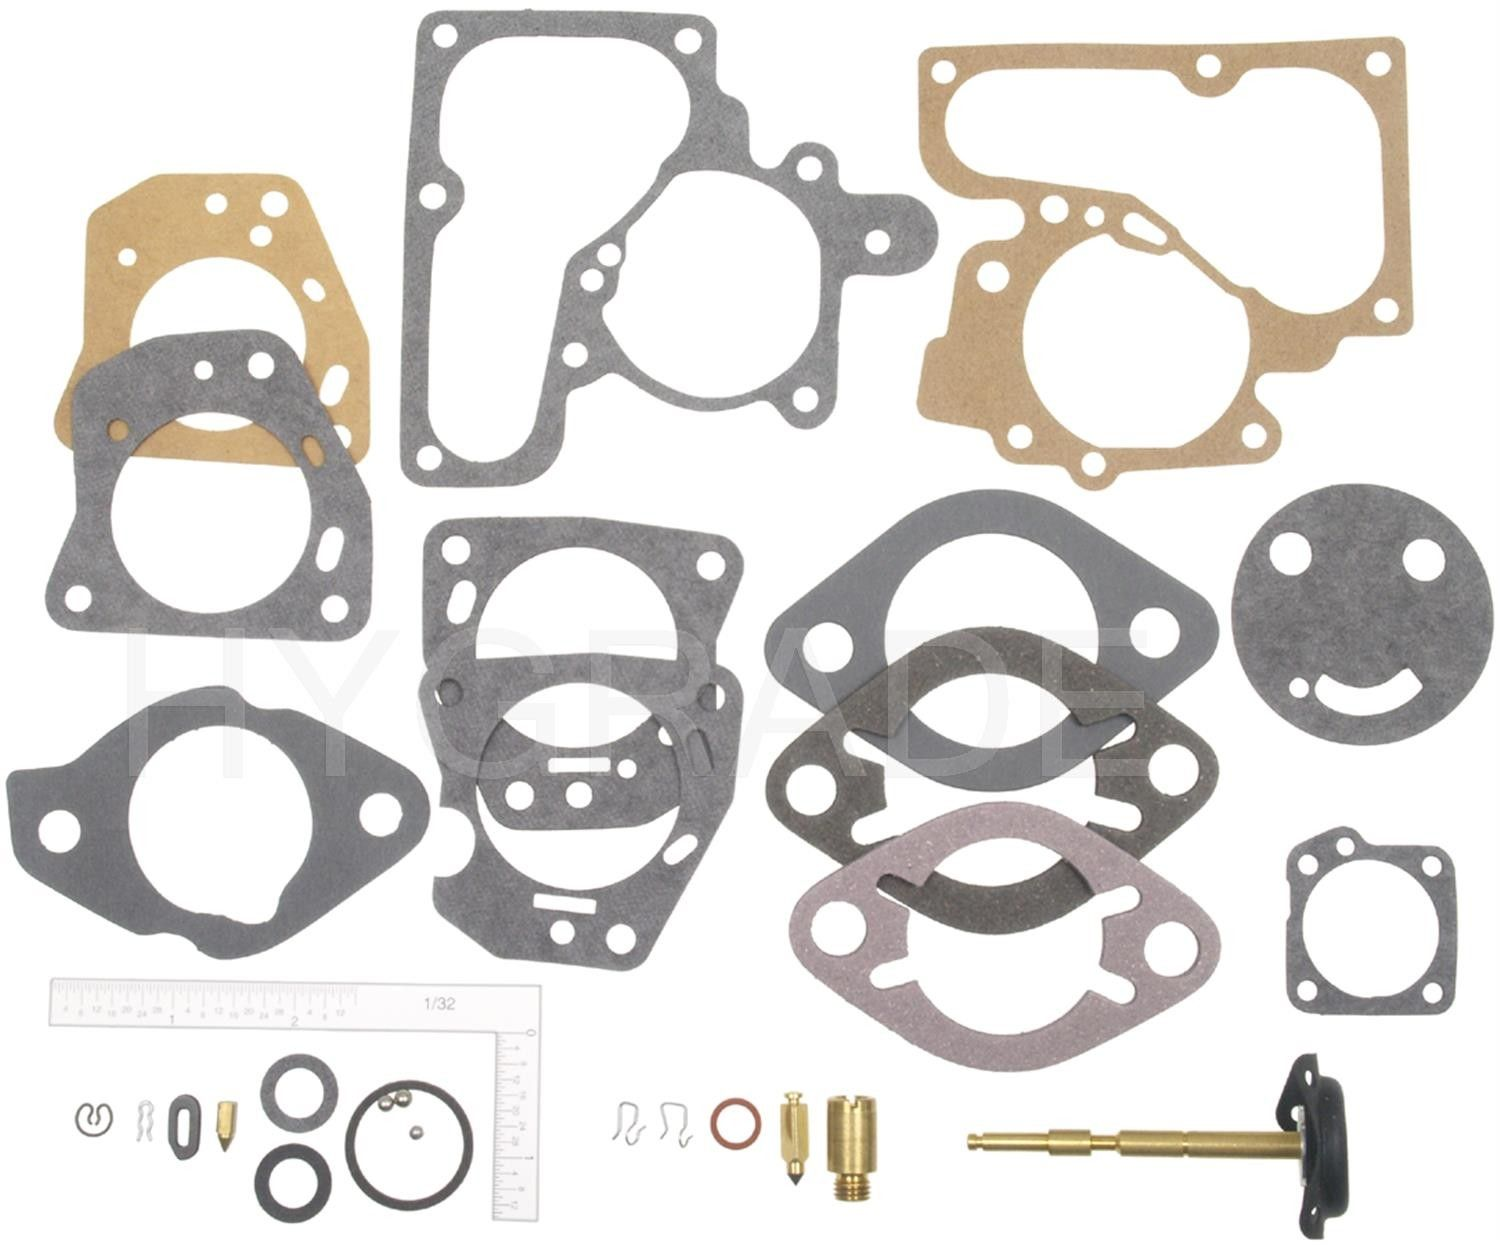 Ford F 250 Carburetor Repair Kit Replacement Hygrade Walker Go Wiring Harness Kits 1968 6 Cyl 39l 419b With Carter Carb Yf 4496 4707 7860 C8tf A Be